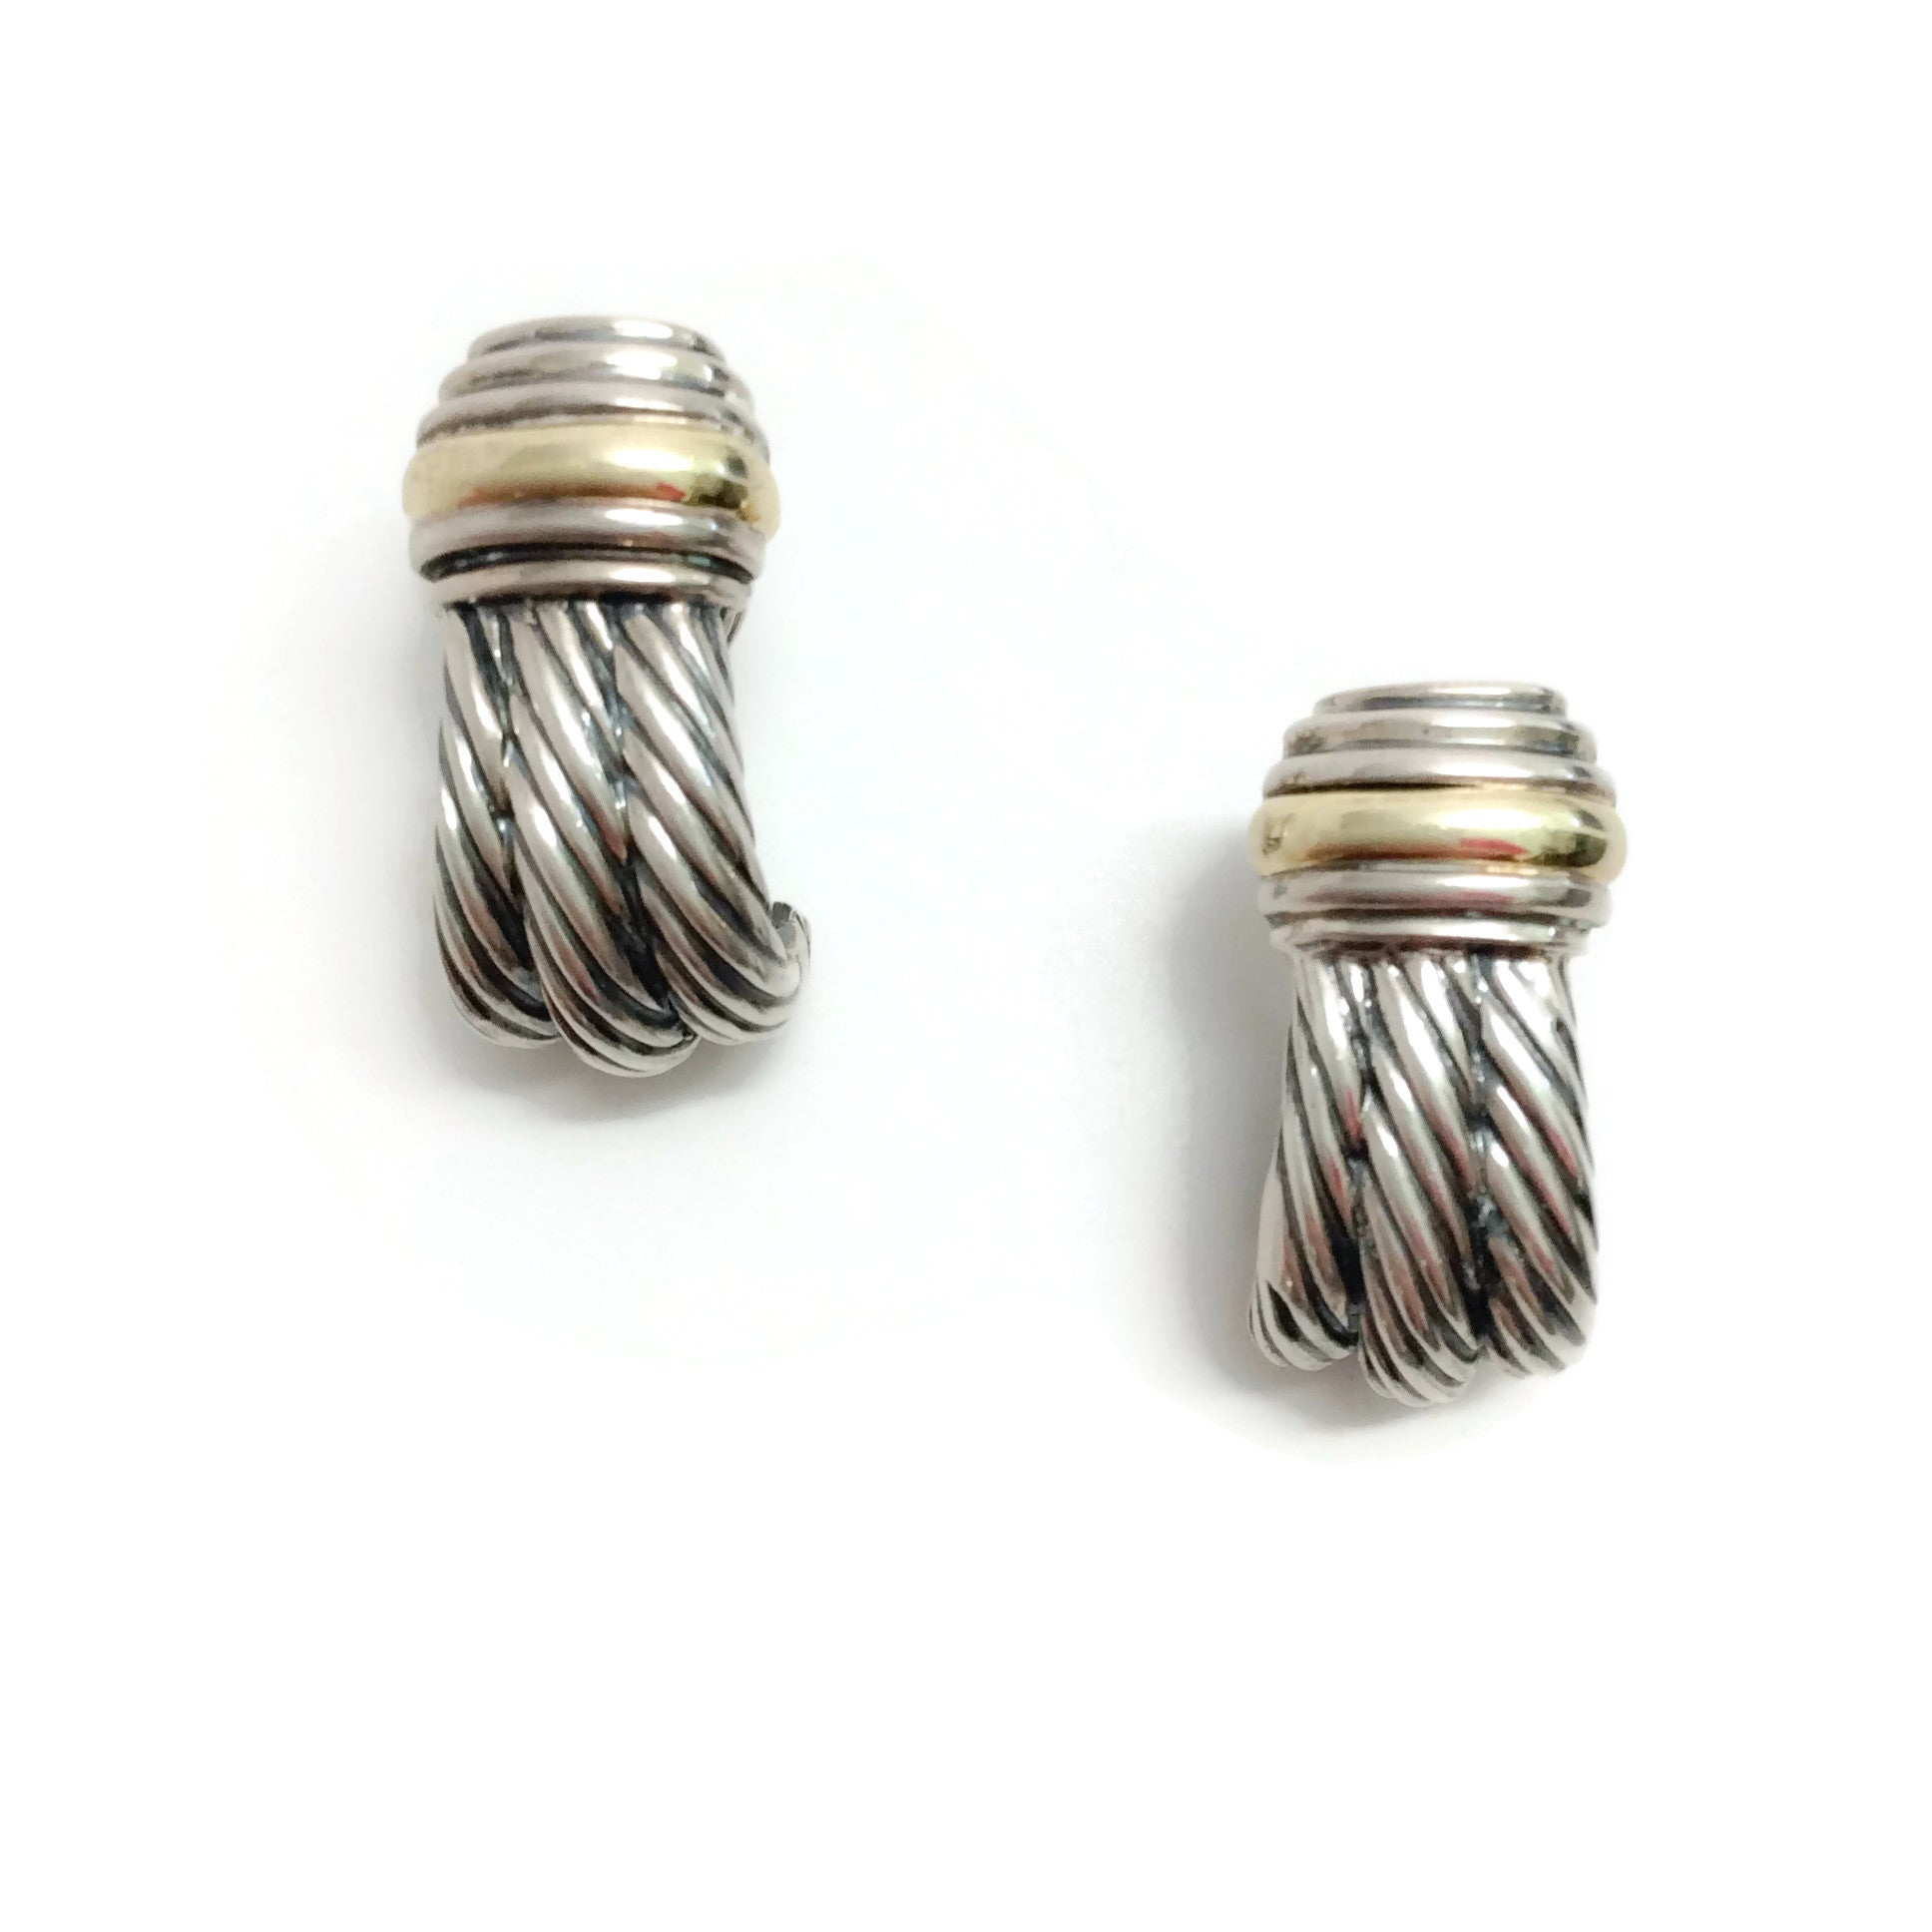 David Yurman Silver / Gold Shrimp Huggie Earrings